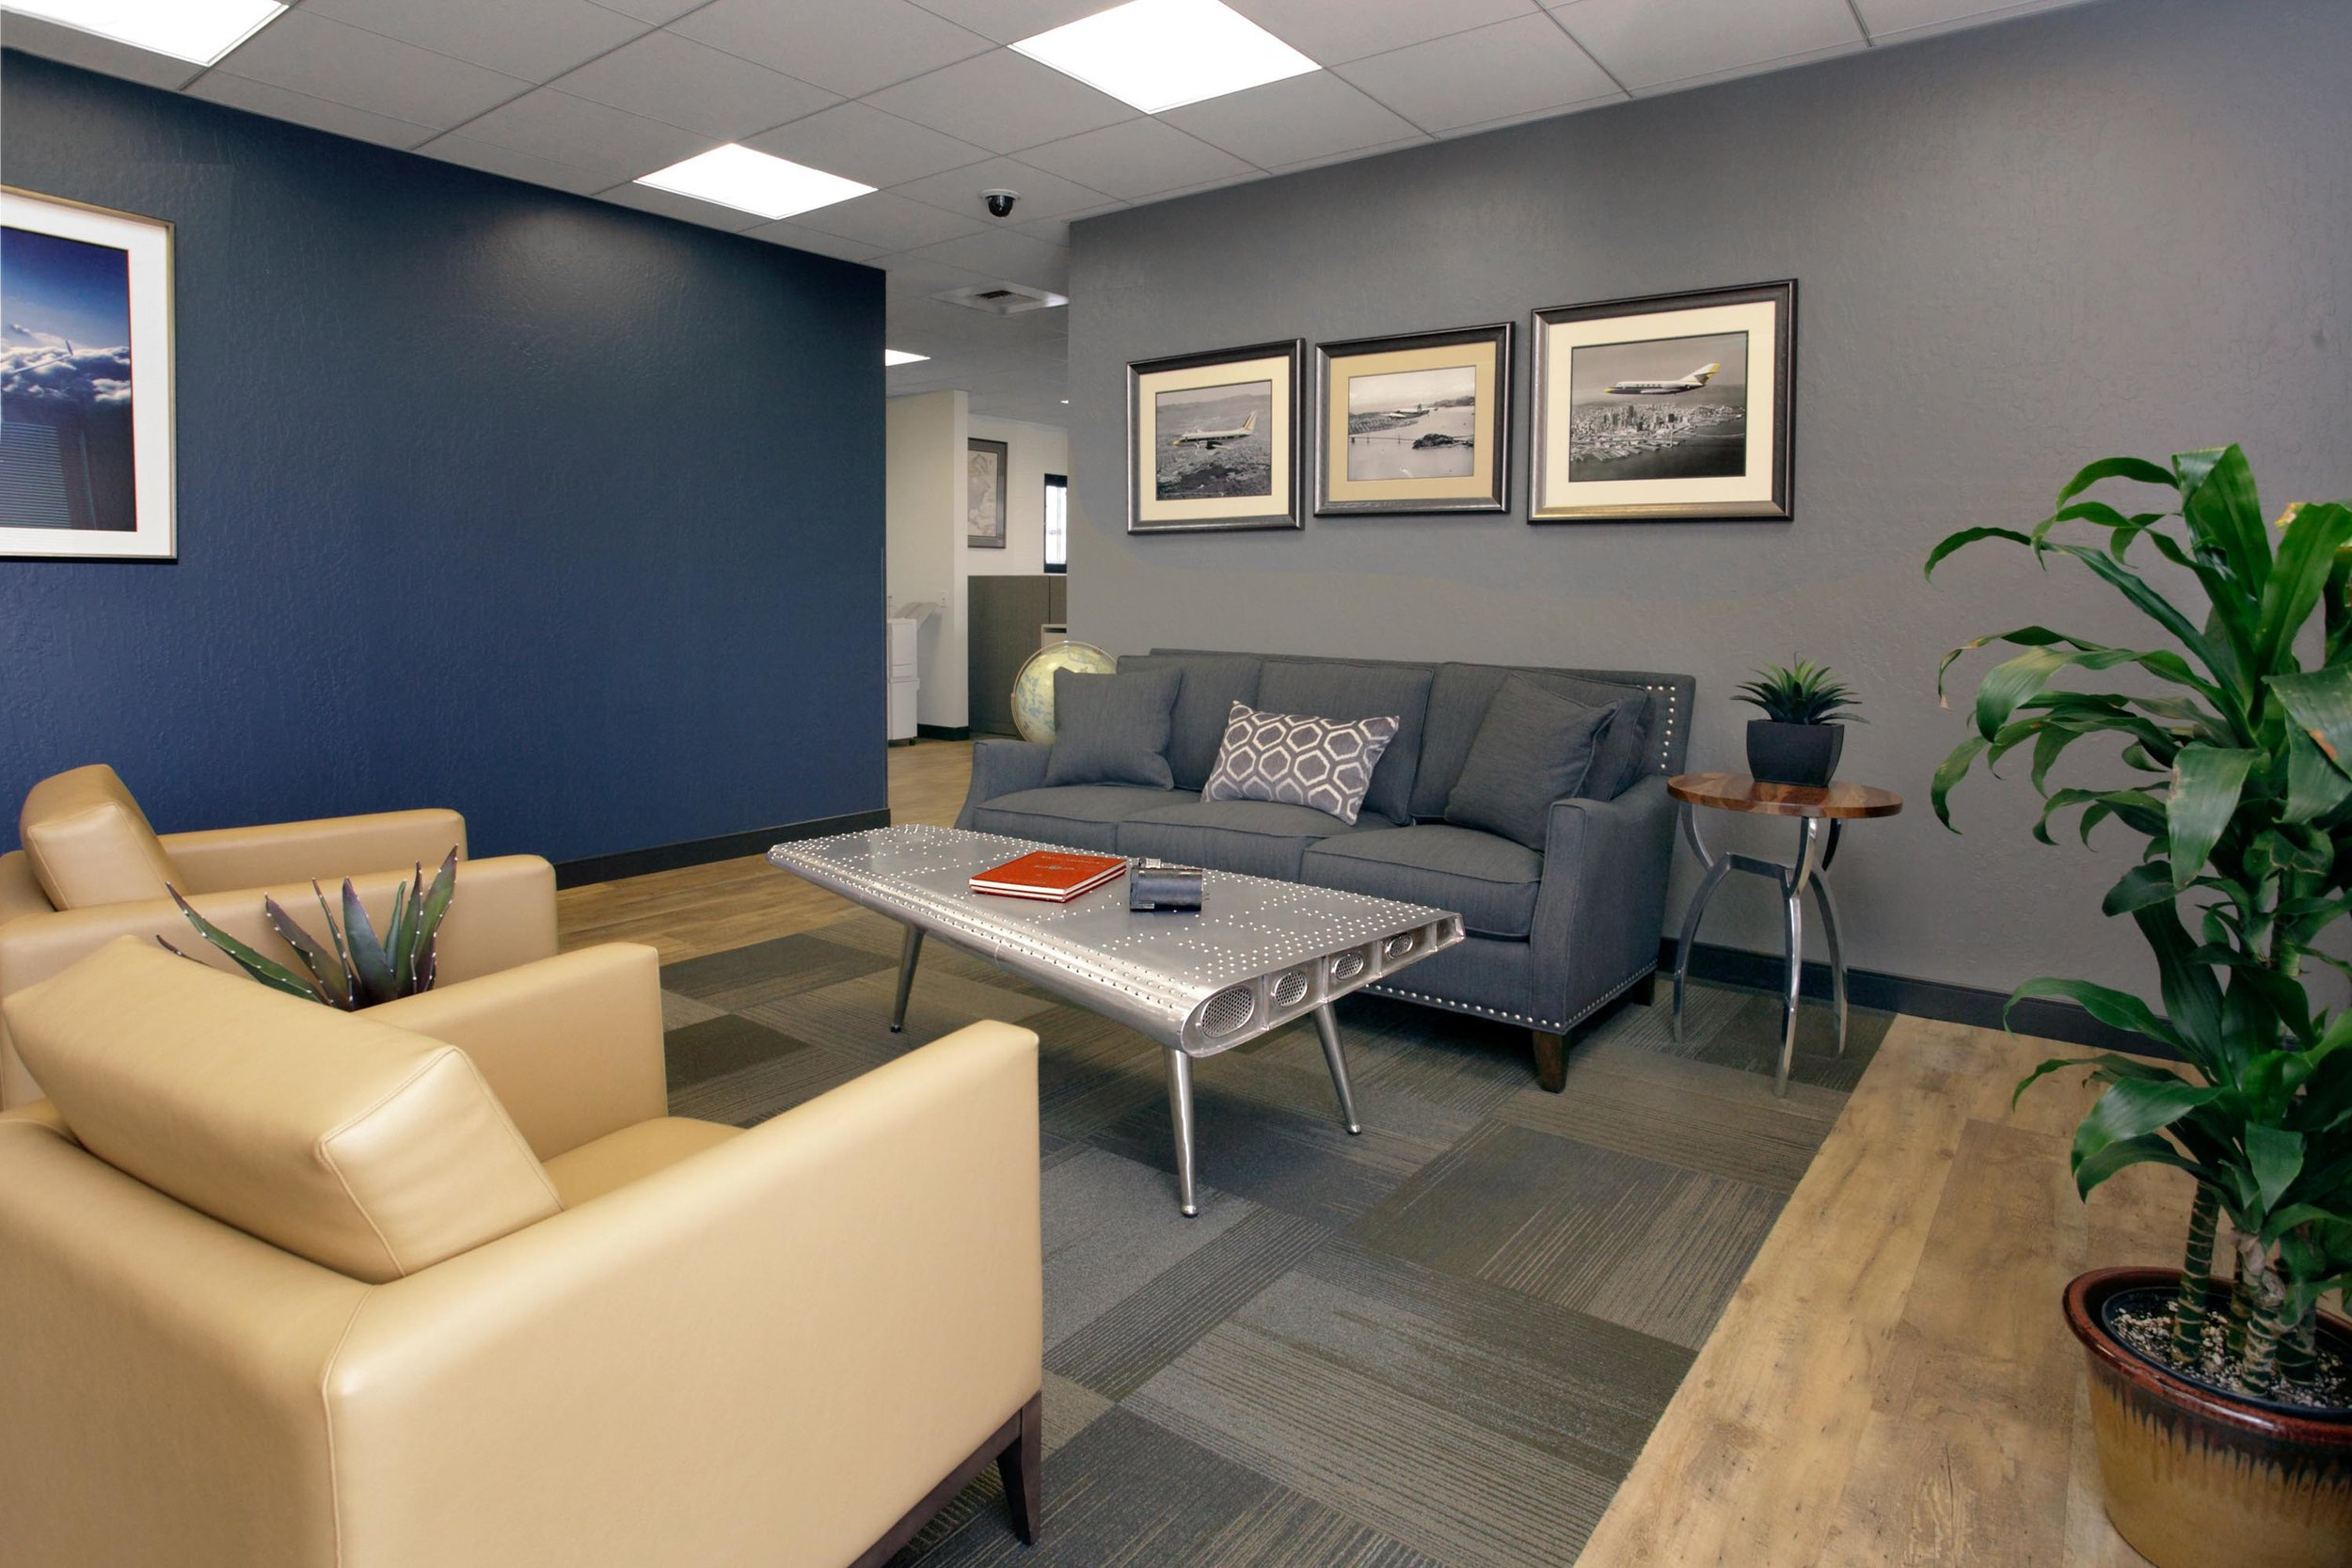 Guest lounge with navy blue and gray furnishing, sofa sets and vinyl tile flooring